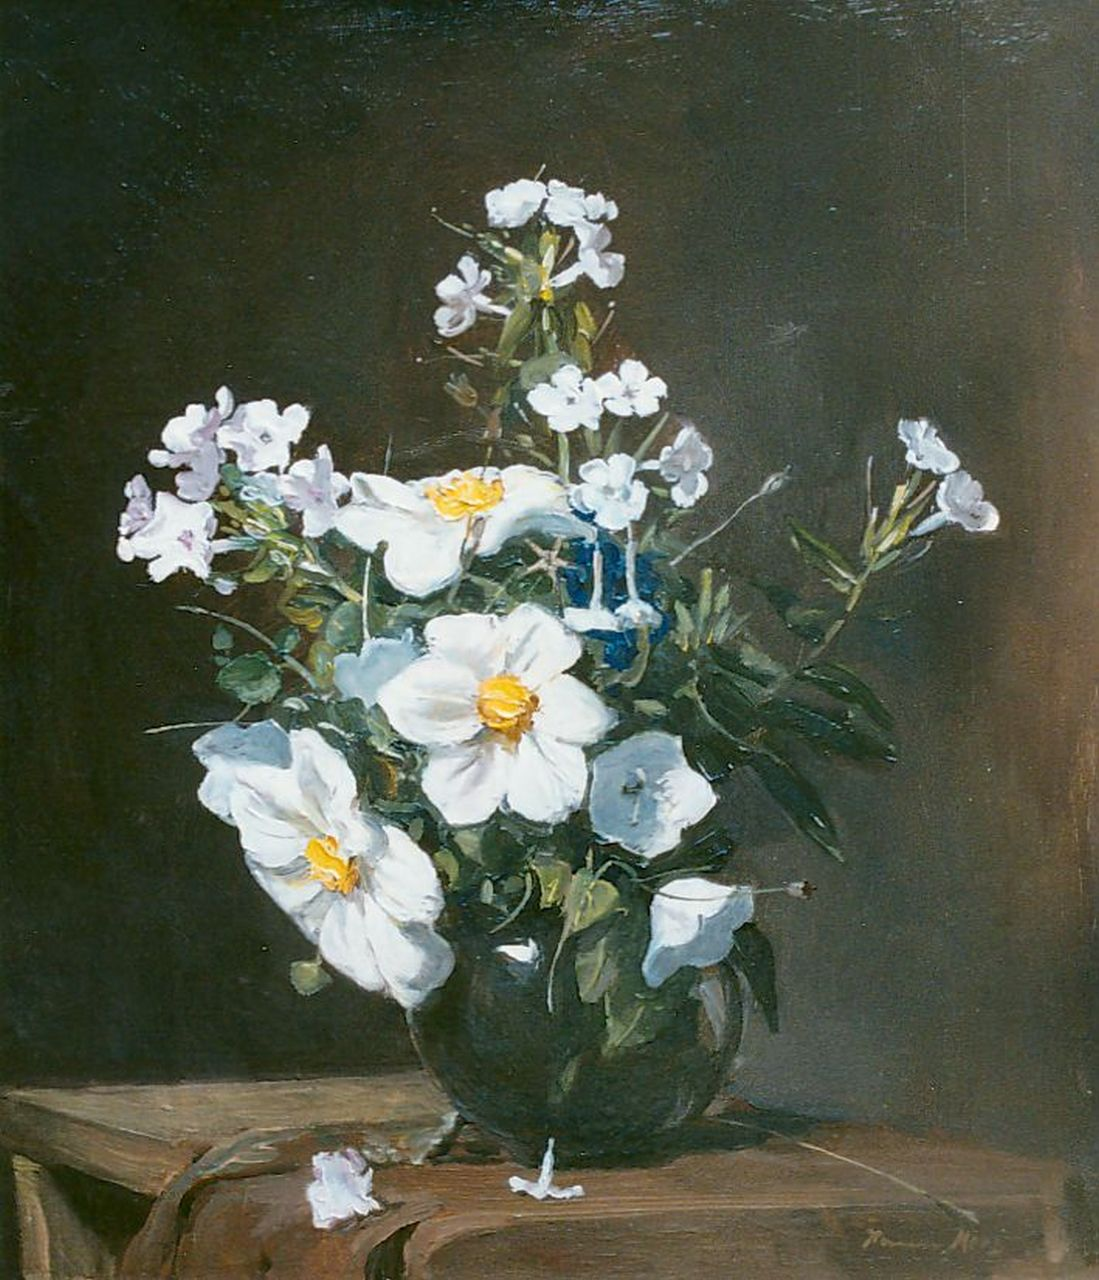 Margaretha Agatha Mees | A flower still life with daisies and poppies, oil on canvas, 44.2 x 38.7 cm, signed l.r.